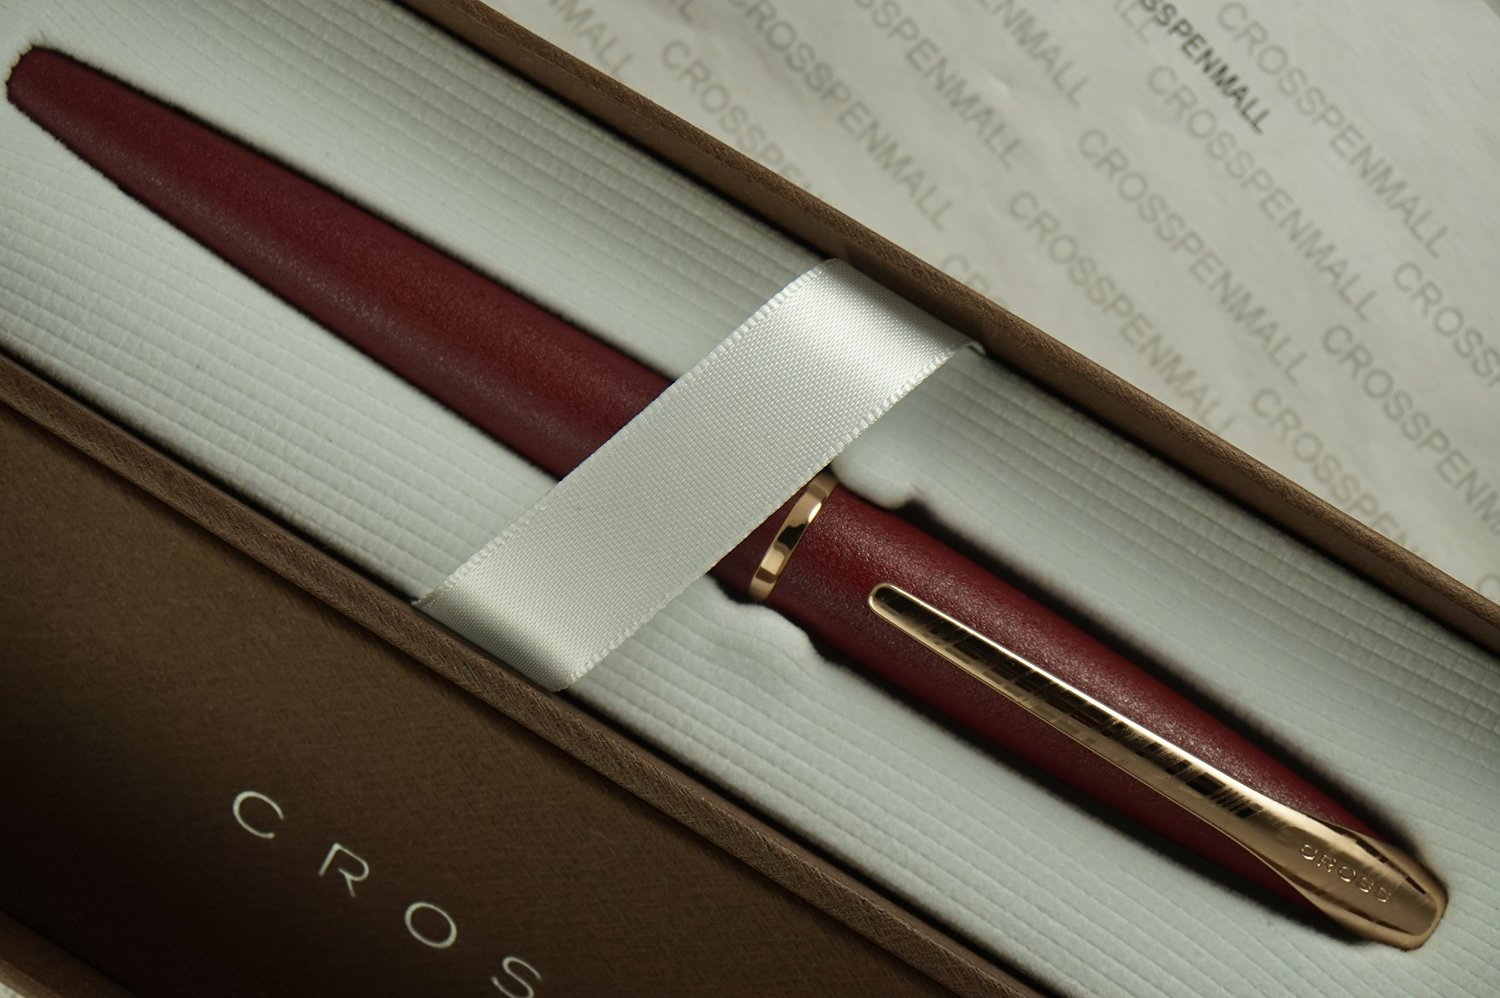 Cross ATX Satin Matte Claret Red with 23KT Maltese Rose Gold Appointment Select Tip Roller Ball Pen Gold Appointments